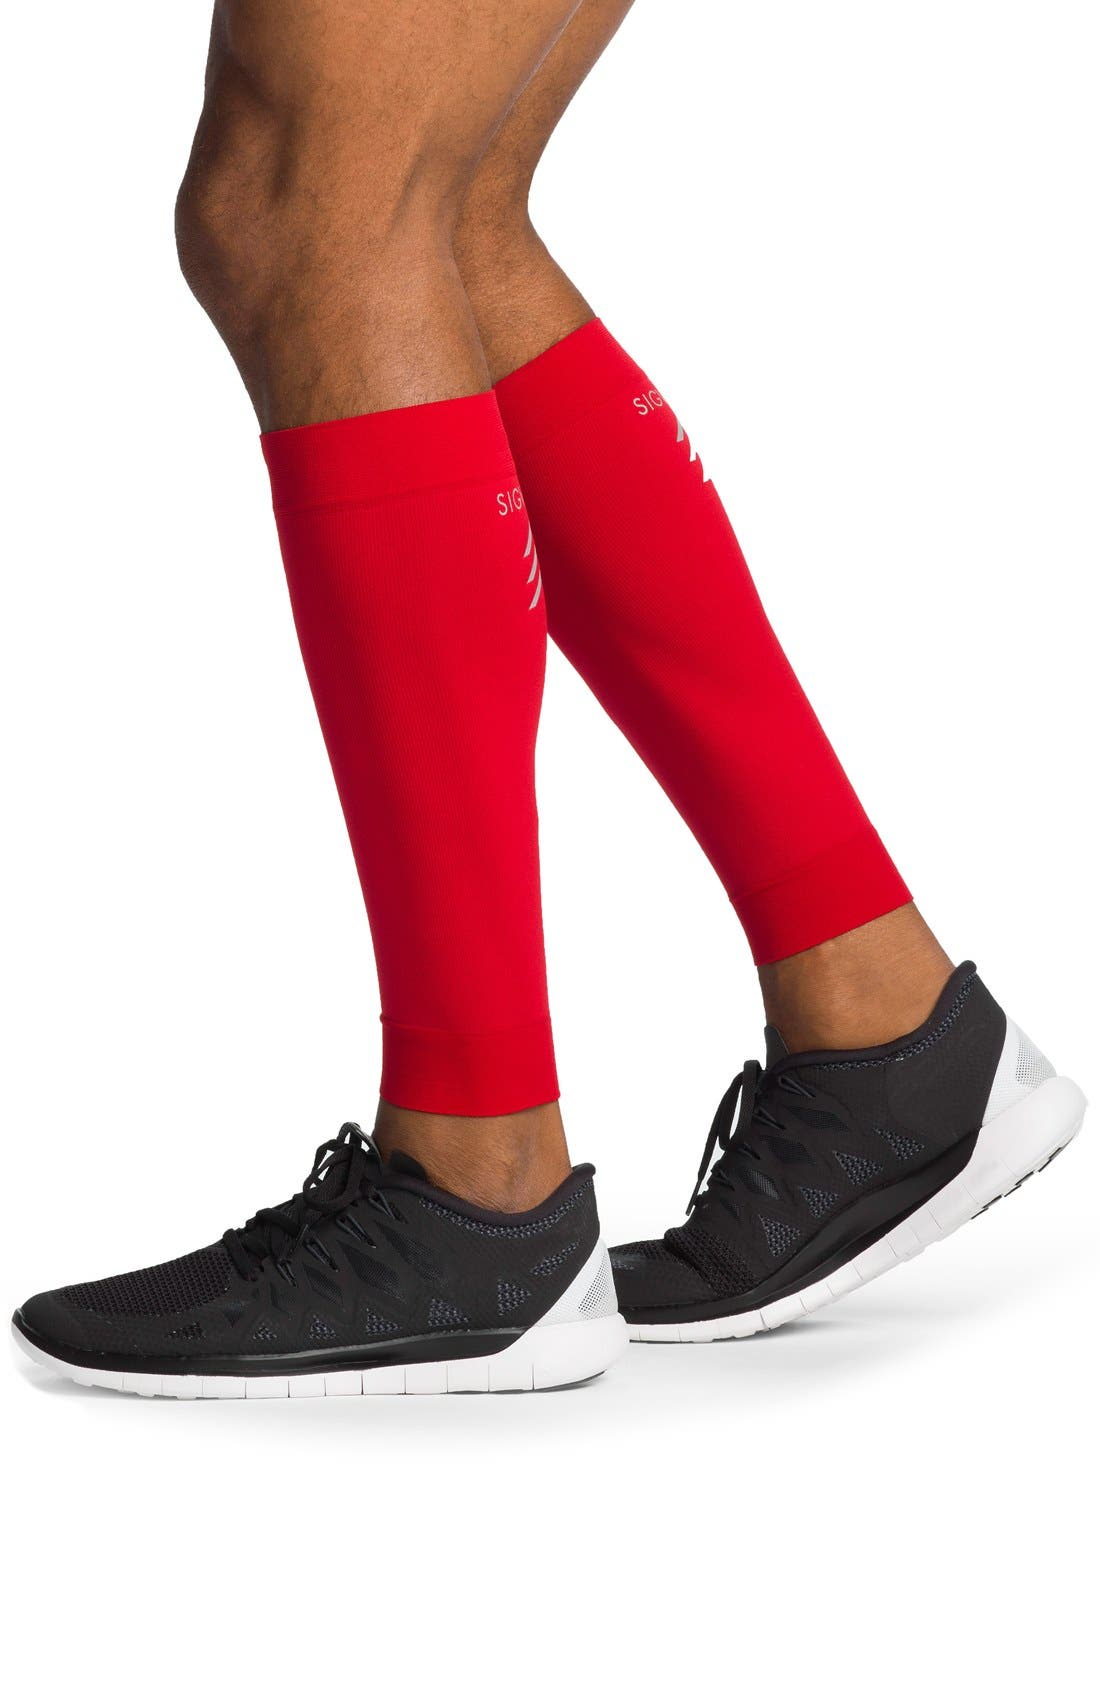 'Sports' Graduated Compression Performance Calf Sleeve,                             Alternate thumbnail 2, color,                             RED